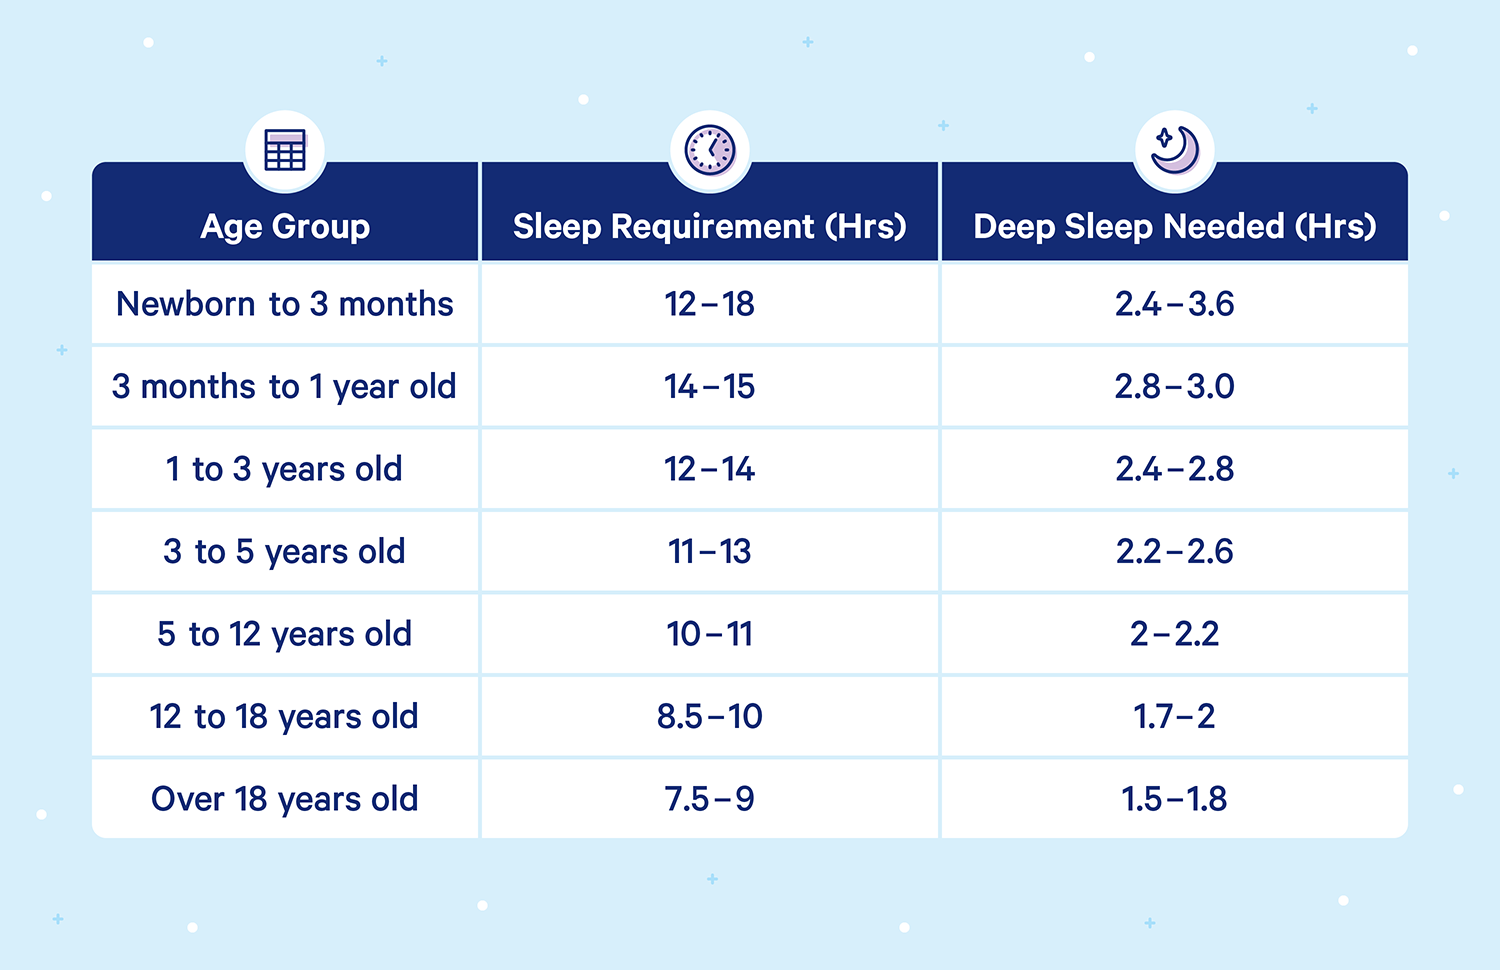 A graph outlining sleep requirements at different ages as follows: Newborn to 3 months: 12-18 hours of sleep, 2.4 to 3.6 hours of deep sleep, 3 months to 1 year old: 14 to 15 hours of sleep and 2.8 to 3.0 hours of deep sleep, 1 to 3 years old: 12 to 14 hours of sleep and 2.4 to 2.8 hours of deep sleep, 3 to 5 years old: 11 to 13 hours of sleep and 2.2 to 2.6 hours of deep sleep, 5 to 12 years old: 10 to 11 hours of sleep and 2 to 2.2 hours of deep sleep, 12 to 18 years old 8.5 to 10 hours of sleep and 1.7 to 2 hours of deep sleep, and those over 18 years old: 7.5 to 9 hours of sleep and 1.5 to 1.8 hours of deep sleep.